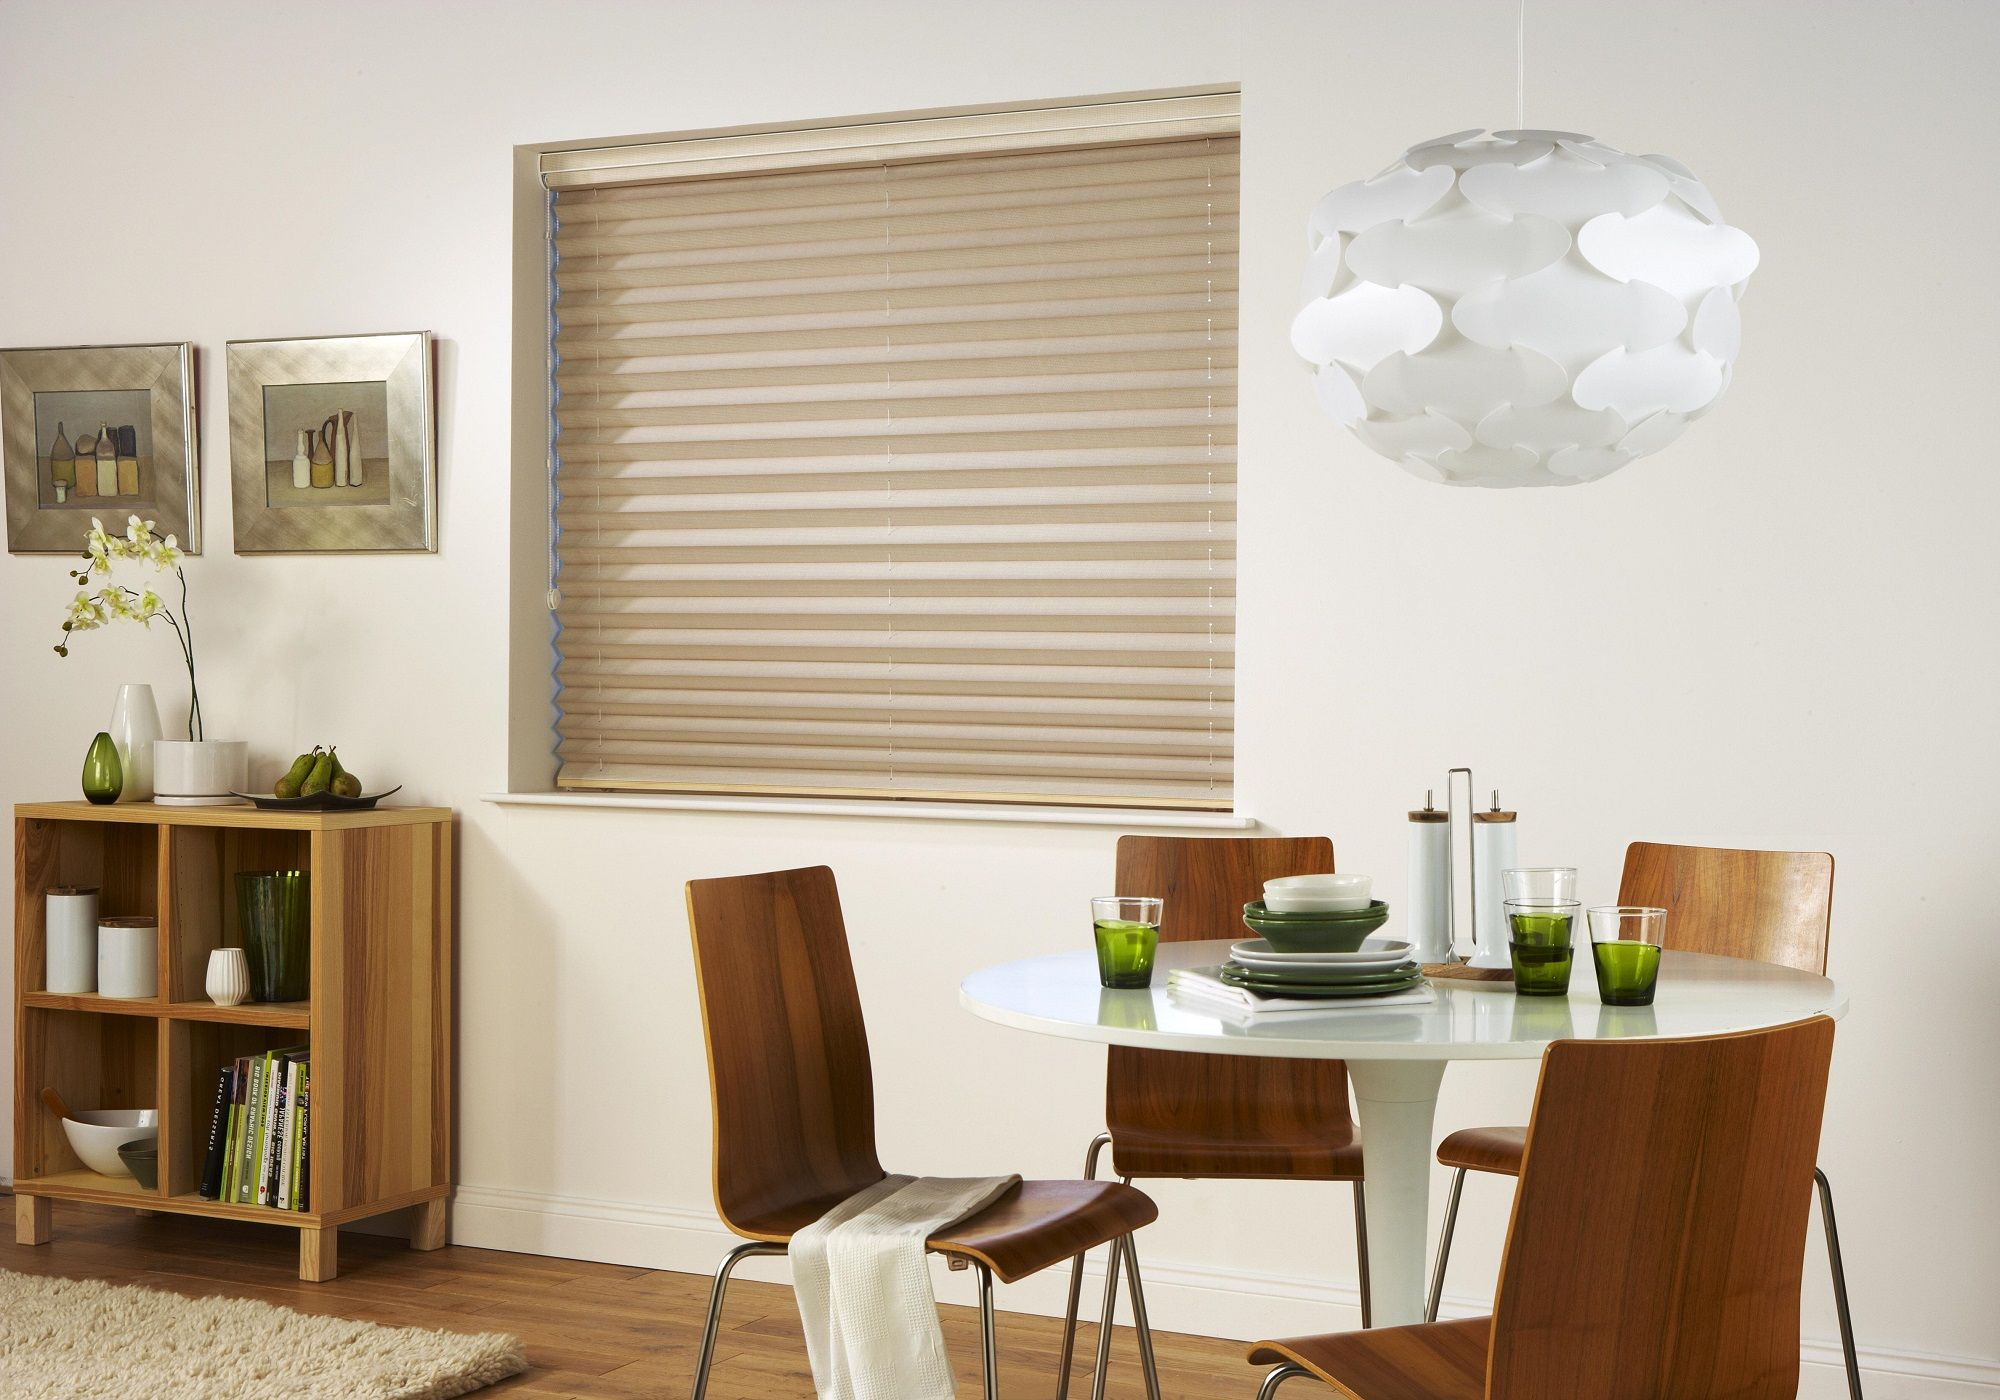 Adorable Window Blinds Design In Dining Room With White Round Table And Brown Chair